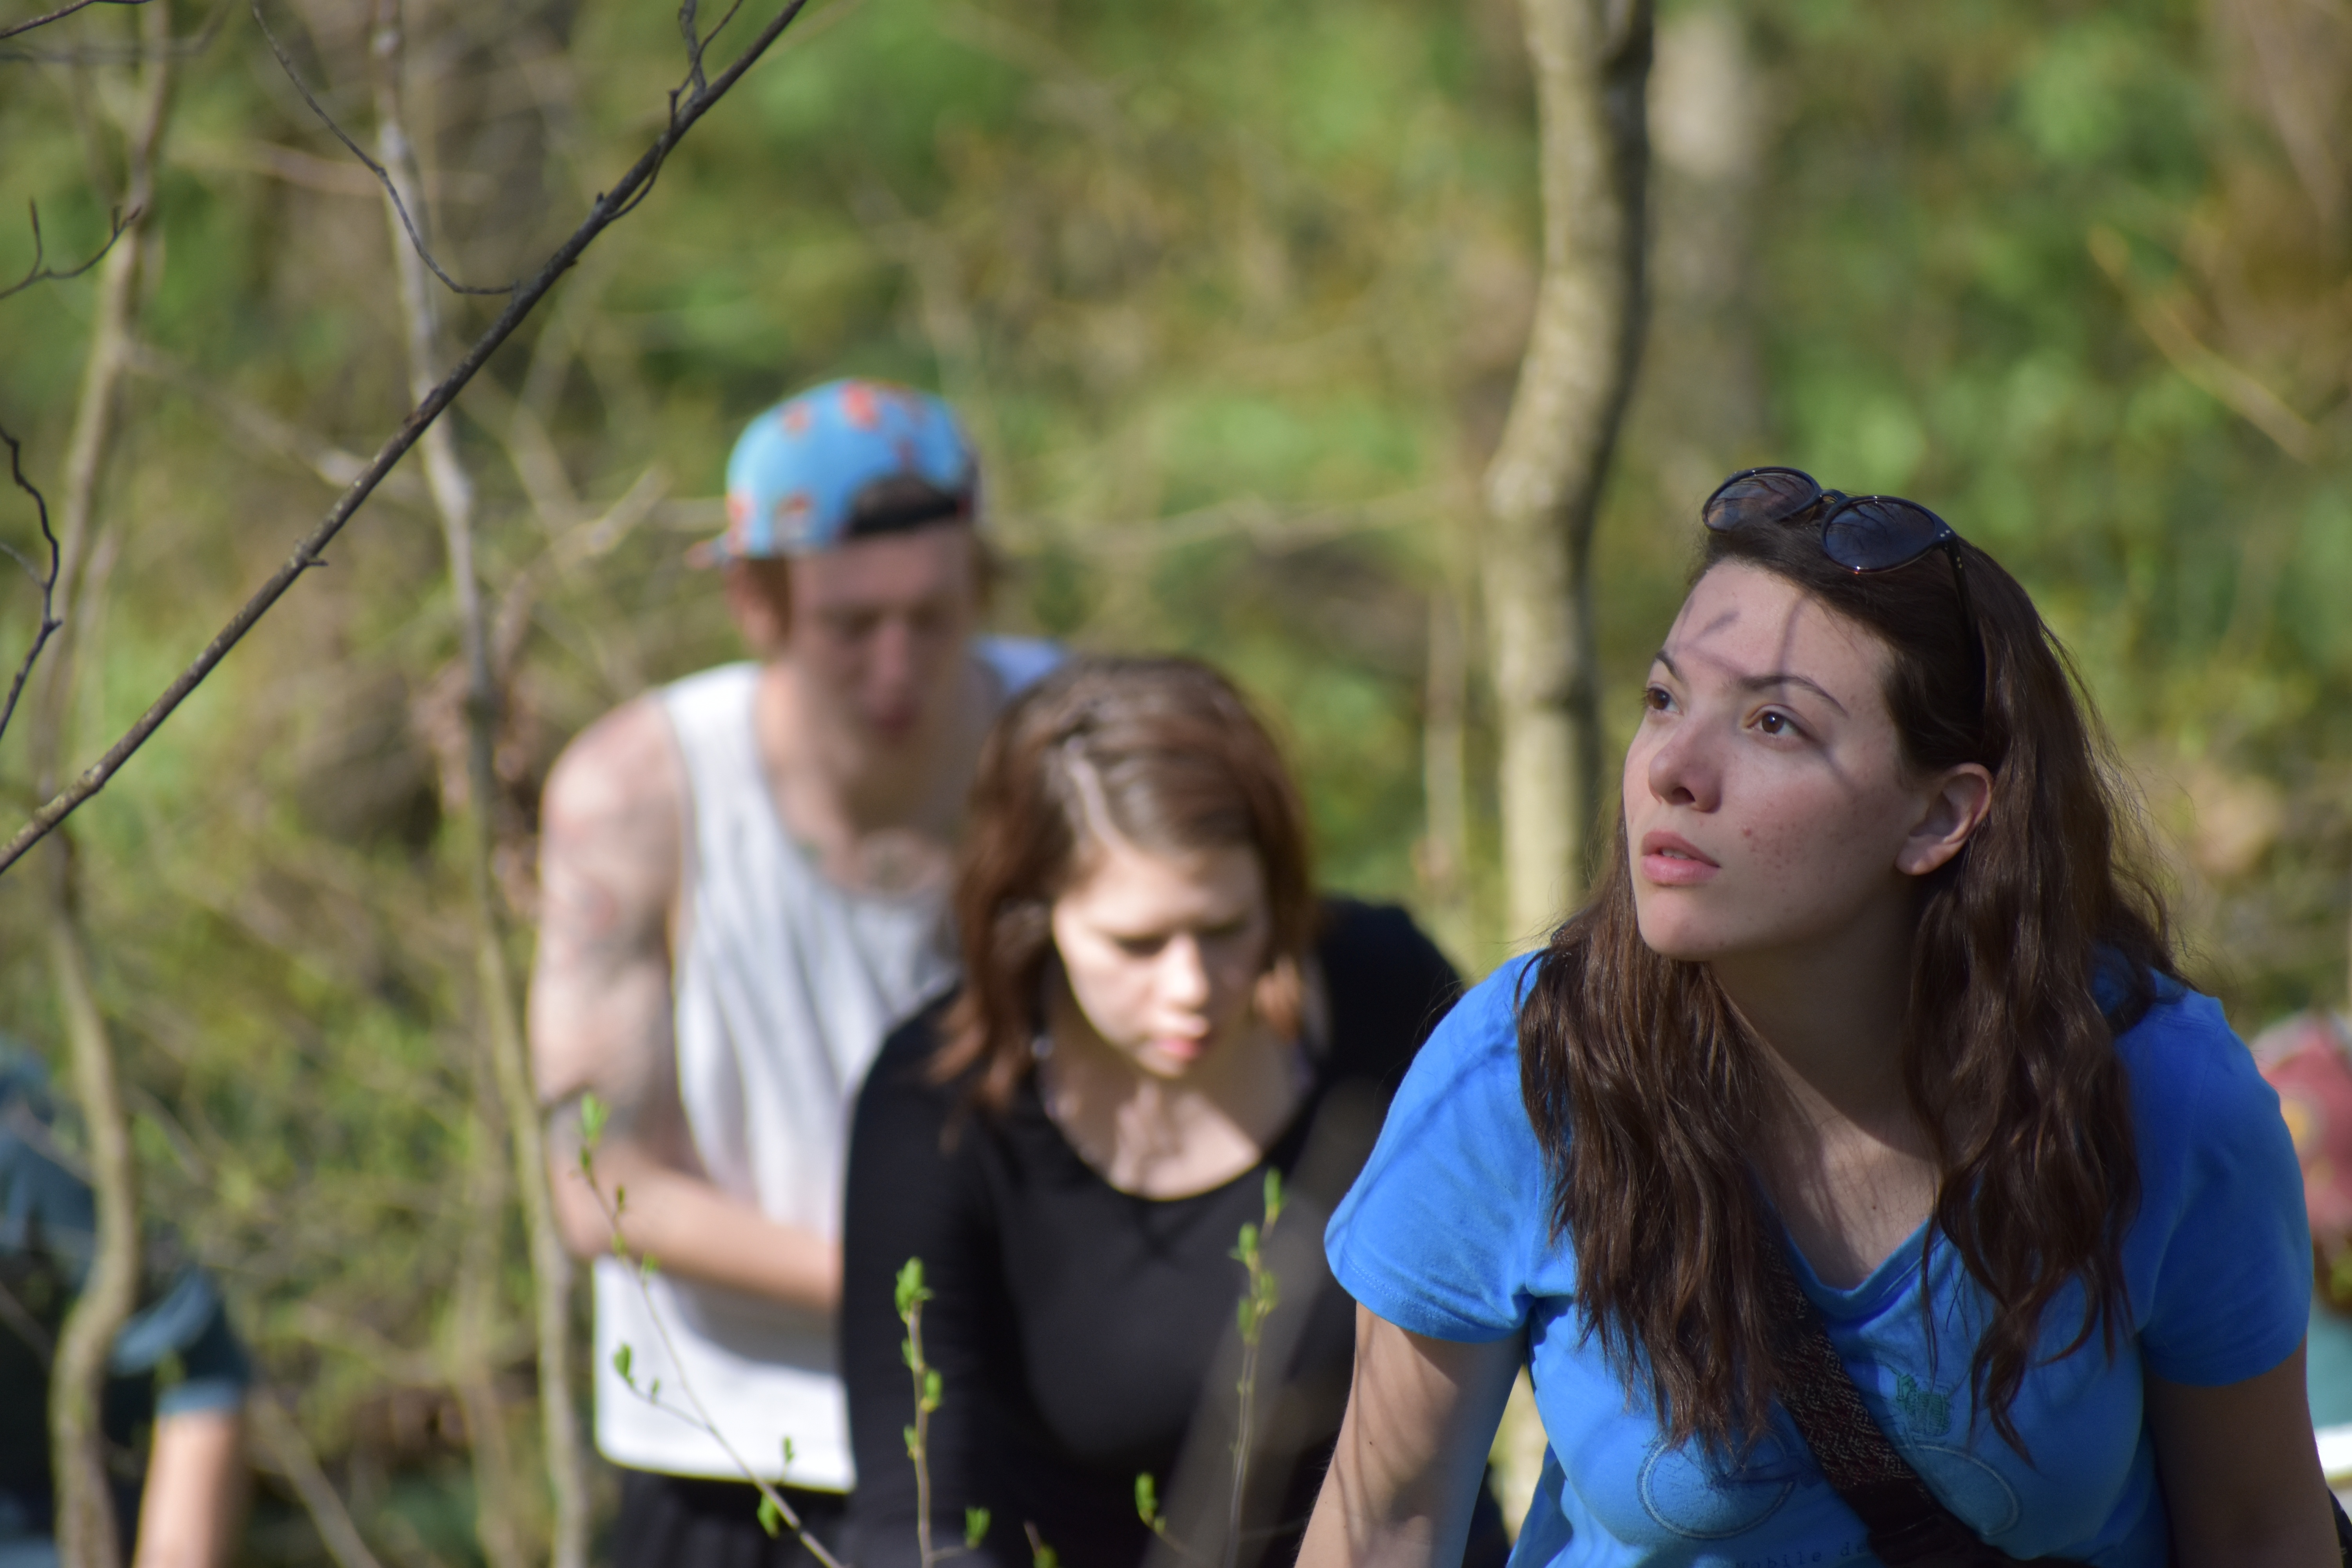 EcoTourism and Adventure Leadership Students on Nature Hike | Feeling Stressed? Park Prescriptions Are The Latest Trend in Medicine